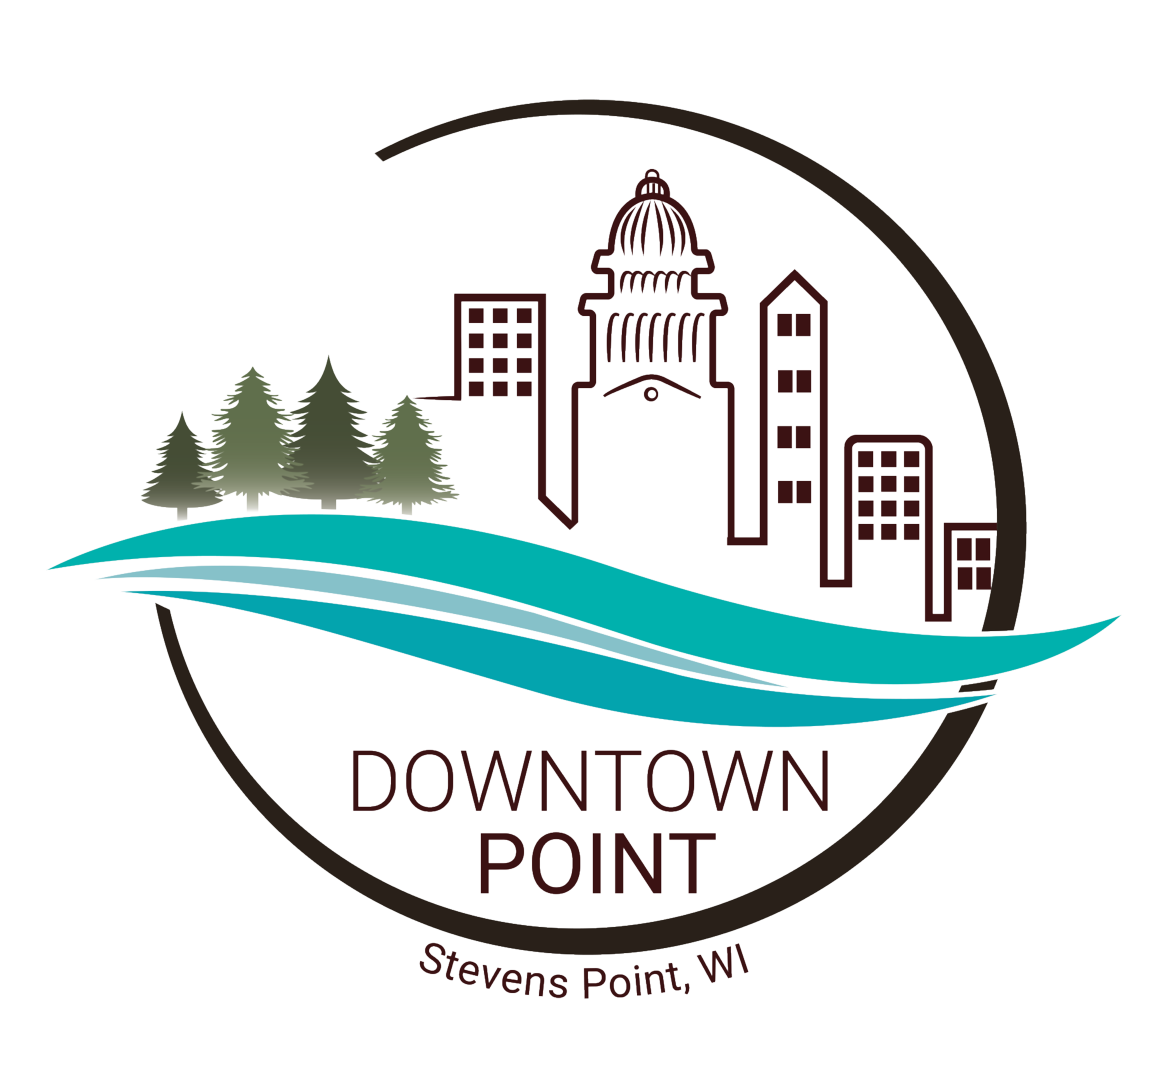 Downtown Point